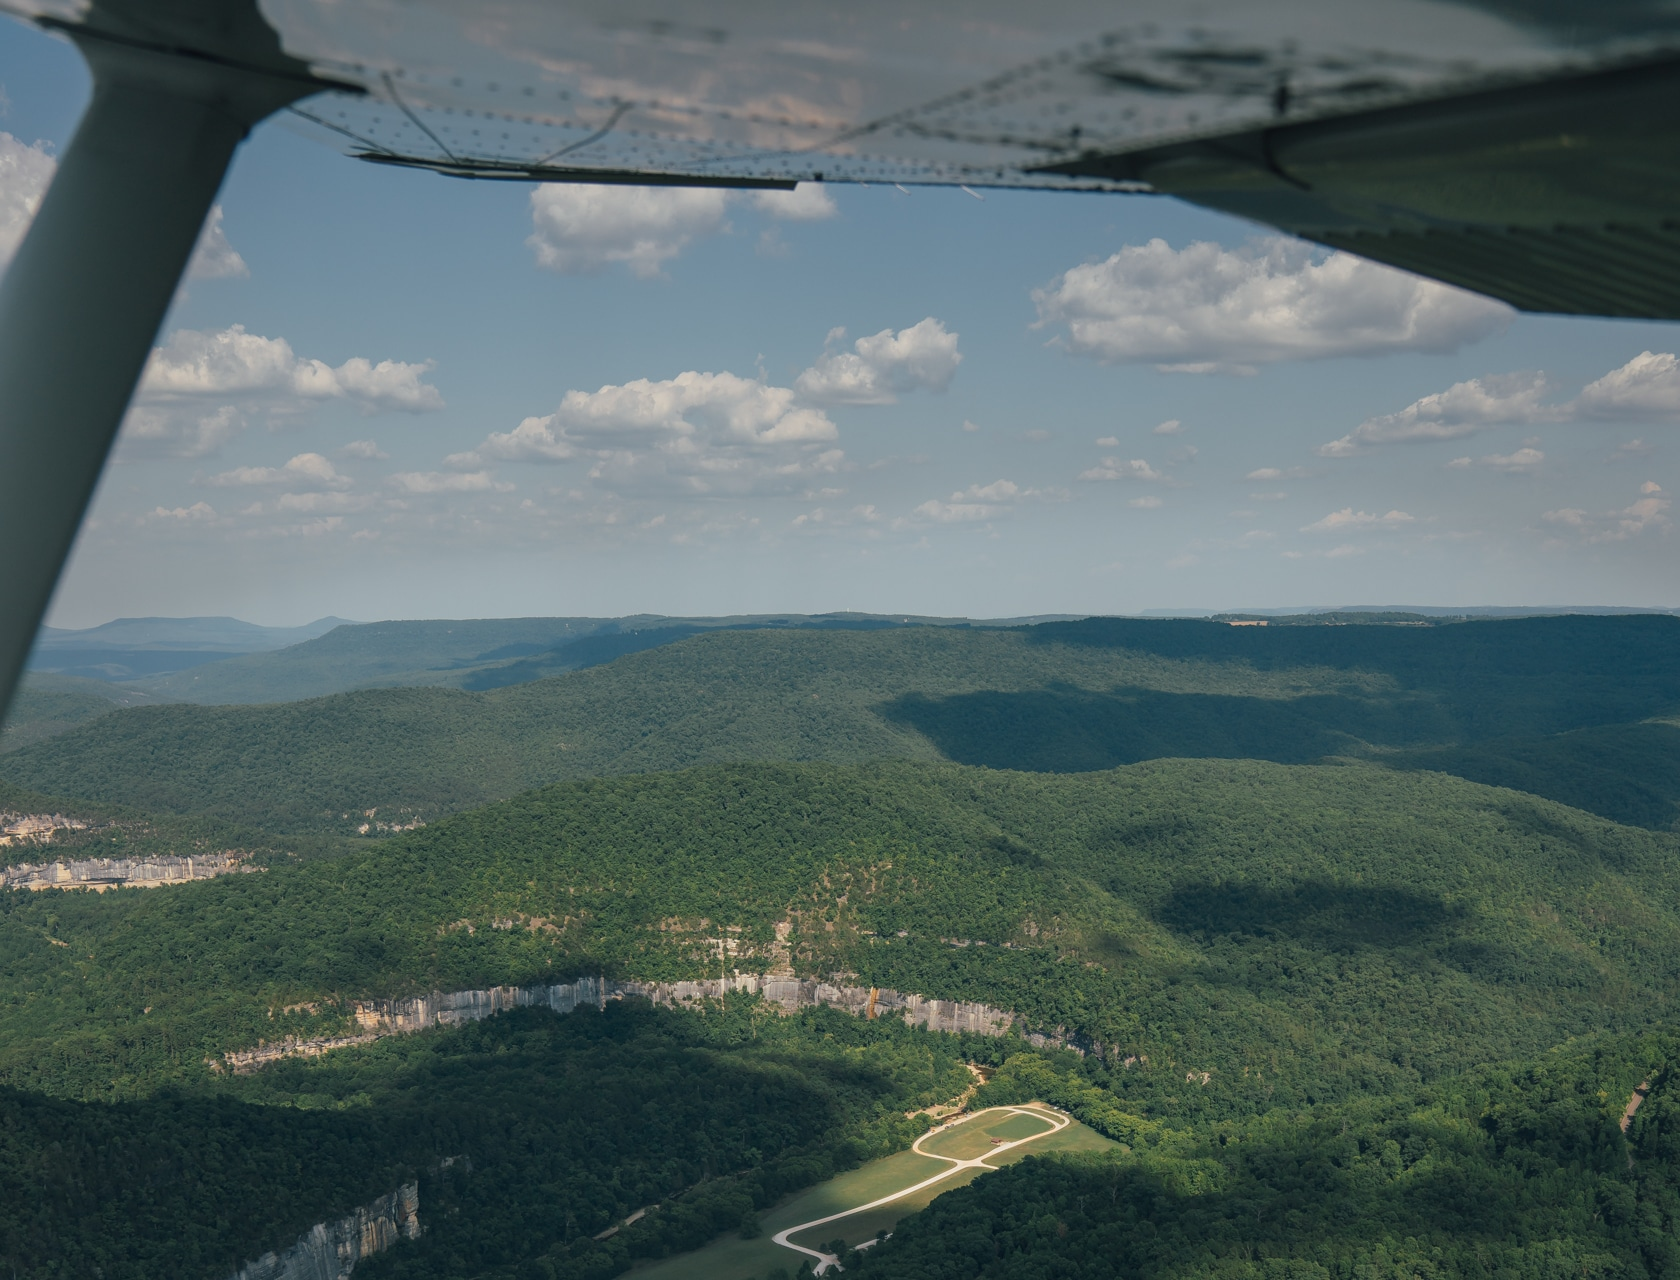 The view over Steel Creek while coming in for a landing at The BOC Captain's Quarters